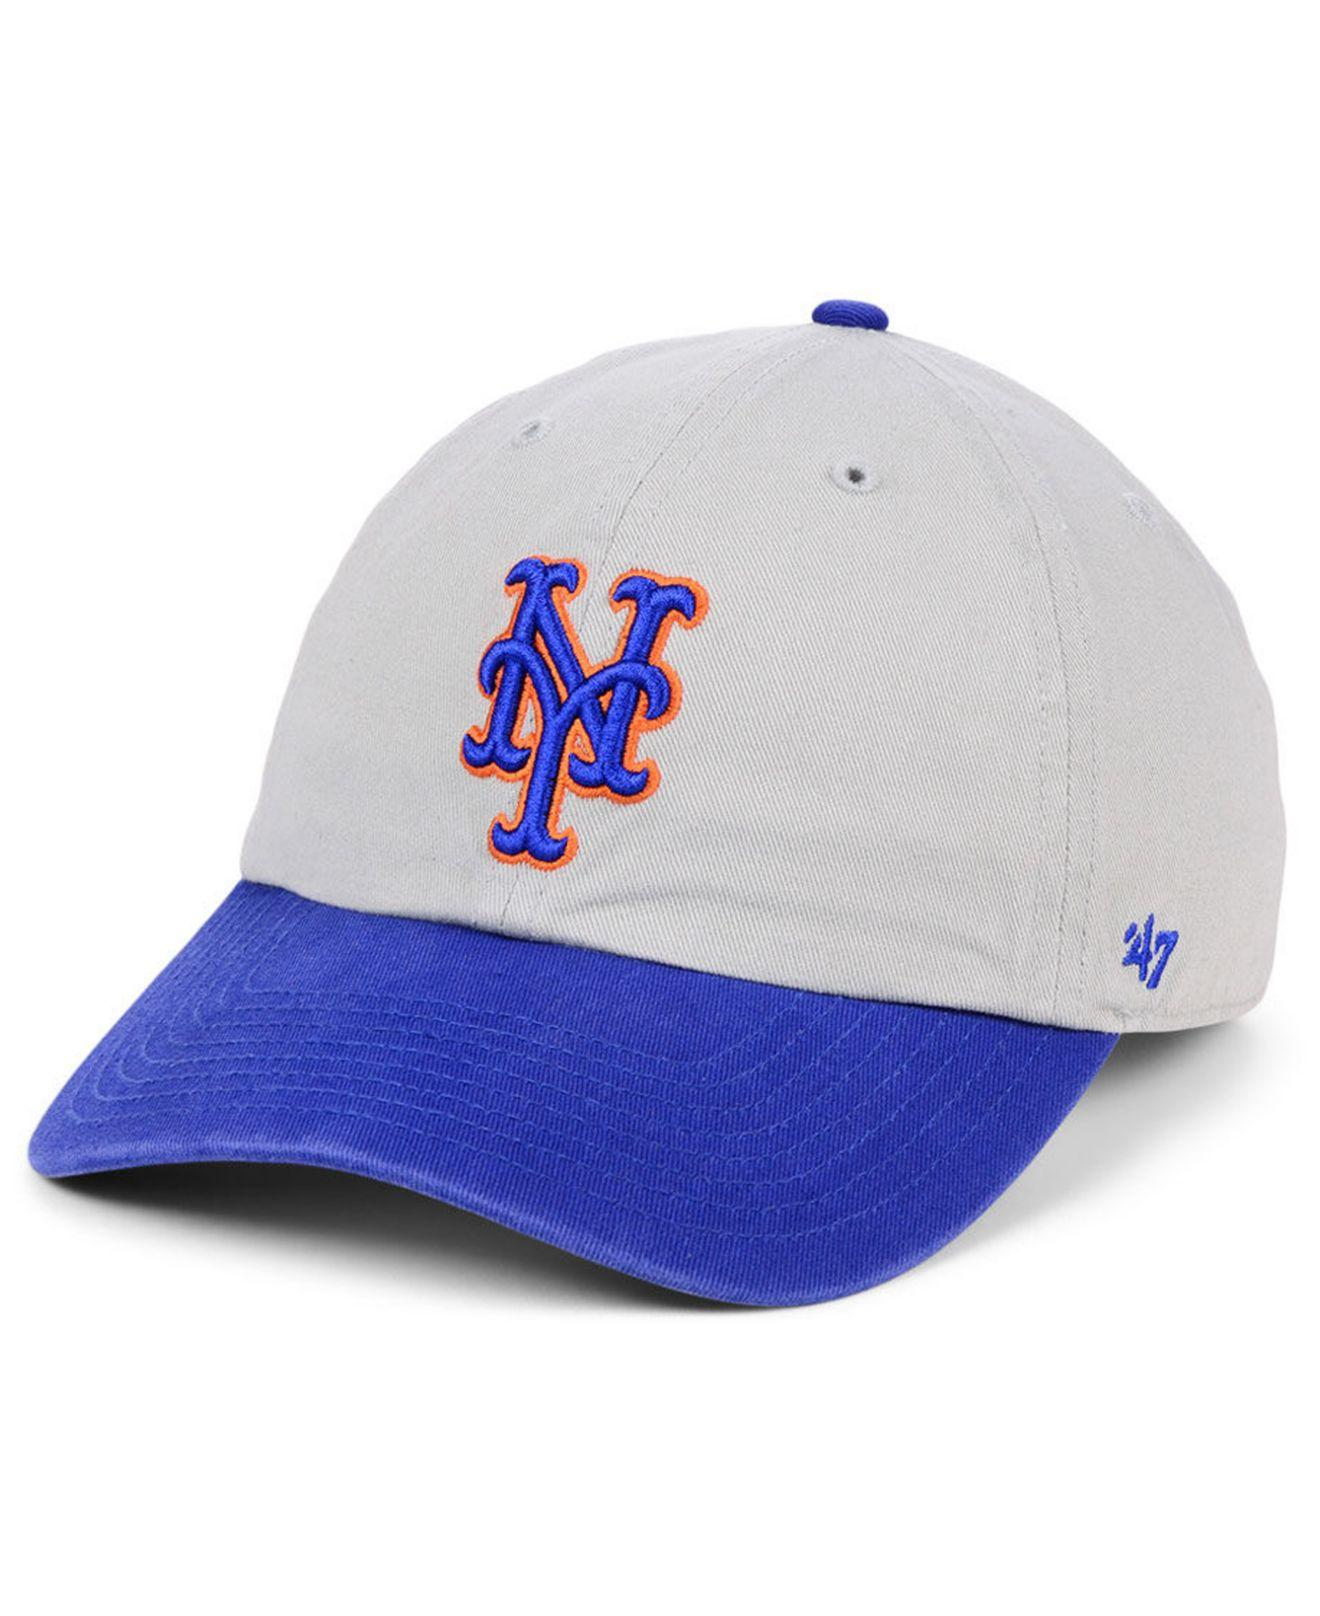 finest selection 5cc68 366e3 47 Brand. Men s New York Mets Gray 2-tone Clean Up Cap